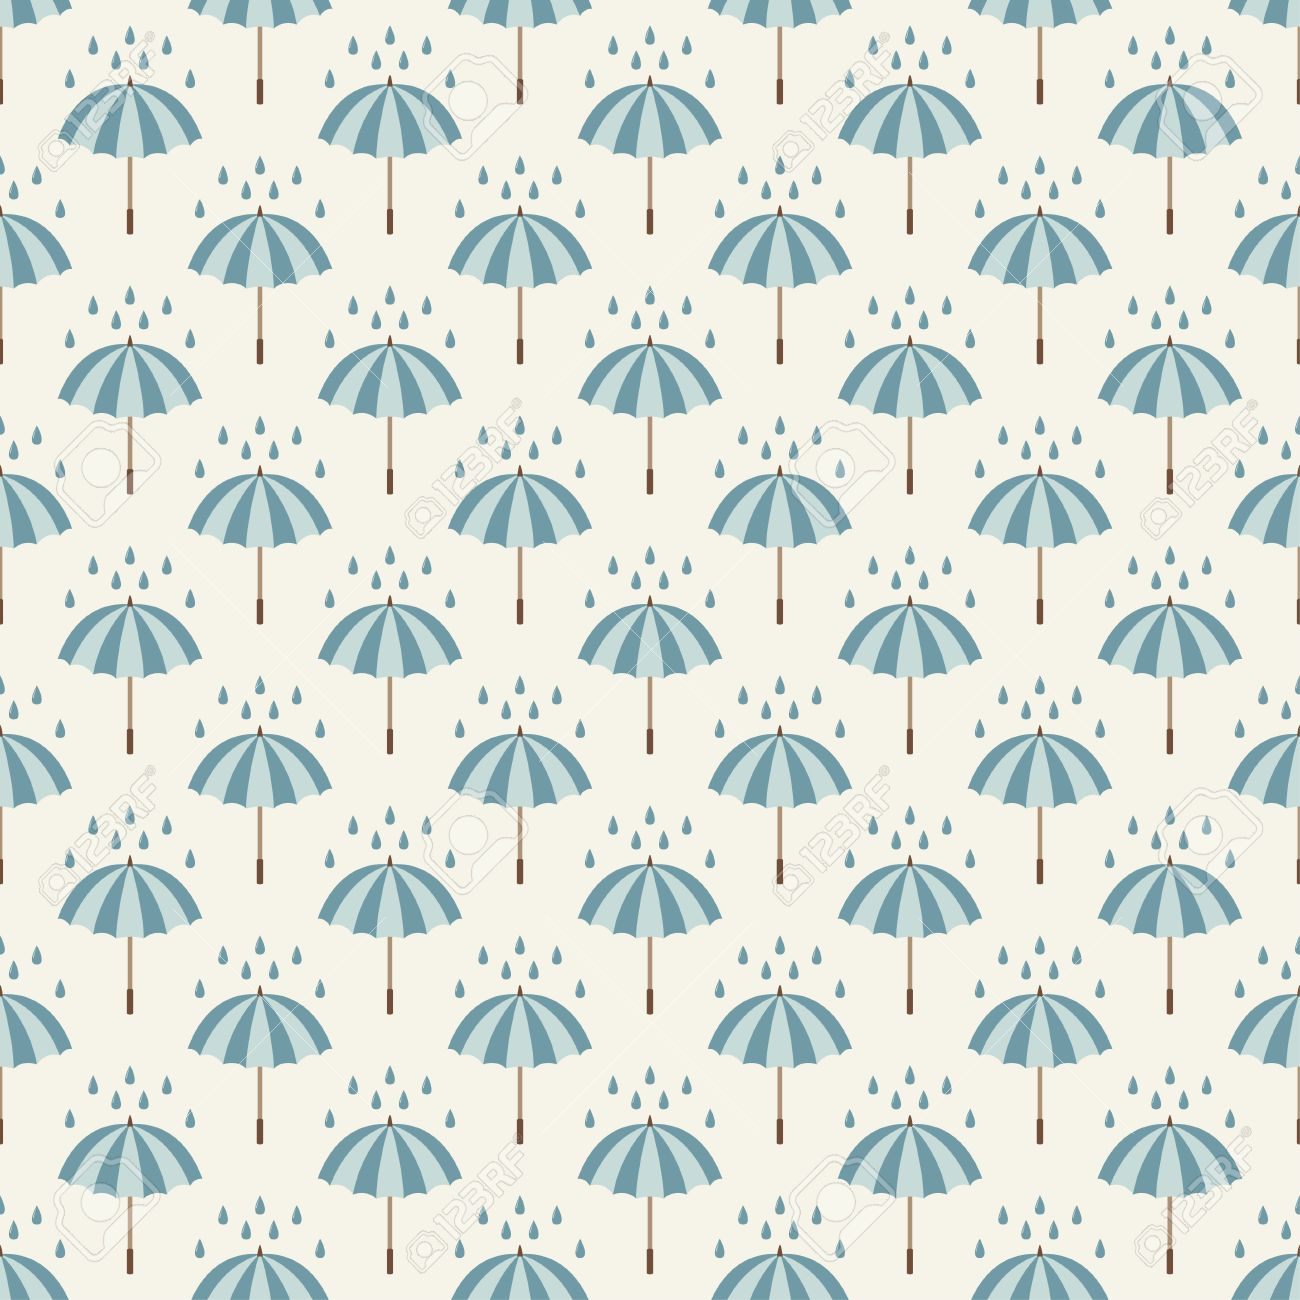 Seamless Pattern With Umbrellas And Rain Drops Can Be Used To Fabric Design Wallpaper